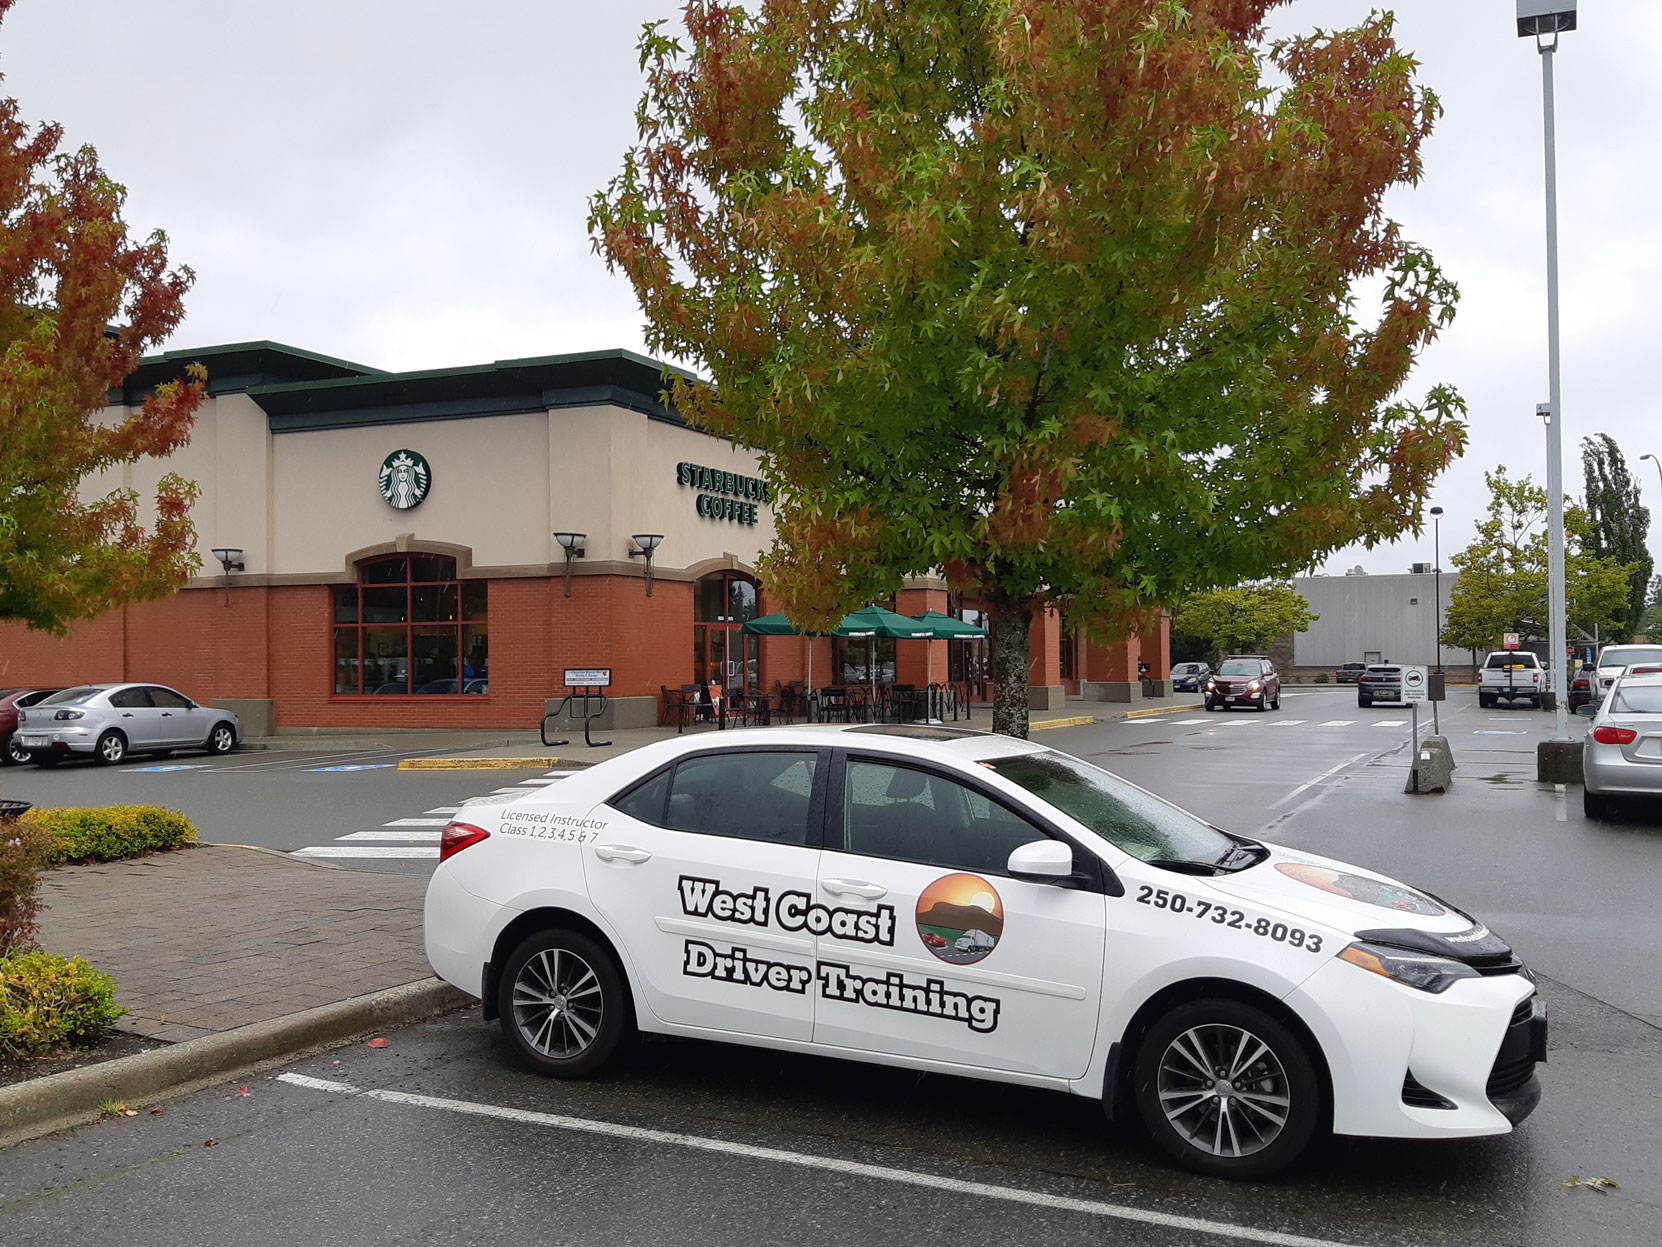 Our 2018 Toyota Corolla parked outside the Starbucks / Chapters, Woodgrove Centre, Nanaimo, B.C. (photo: West Coast Driver Training & Education Inc.)